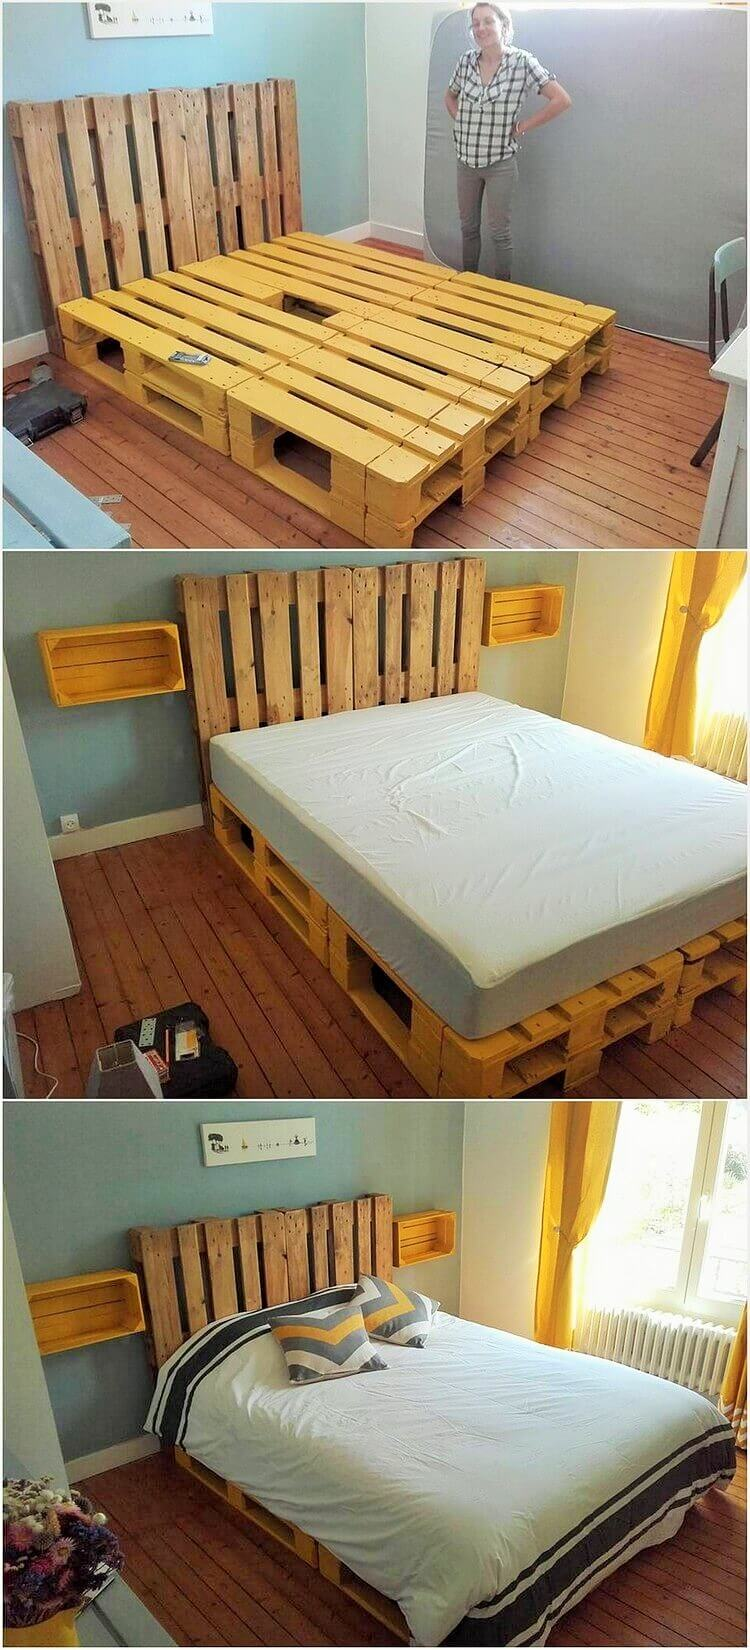 DIY-Wooden-Pallet-Bed-Ideas (2)